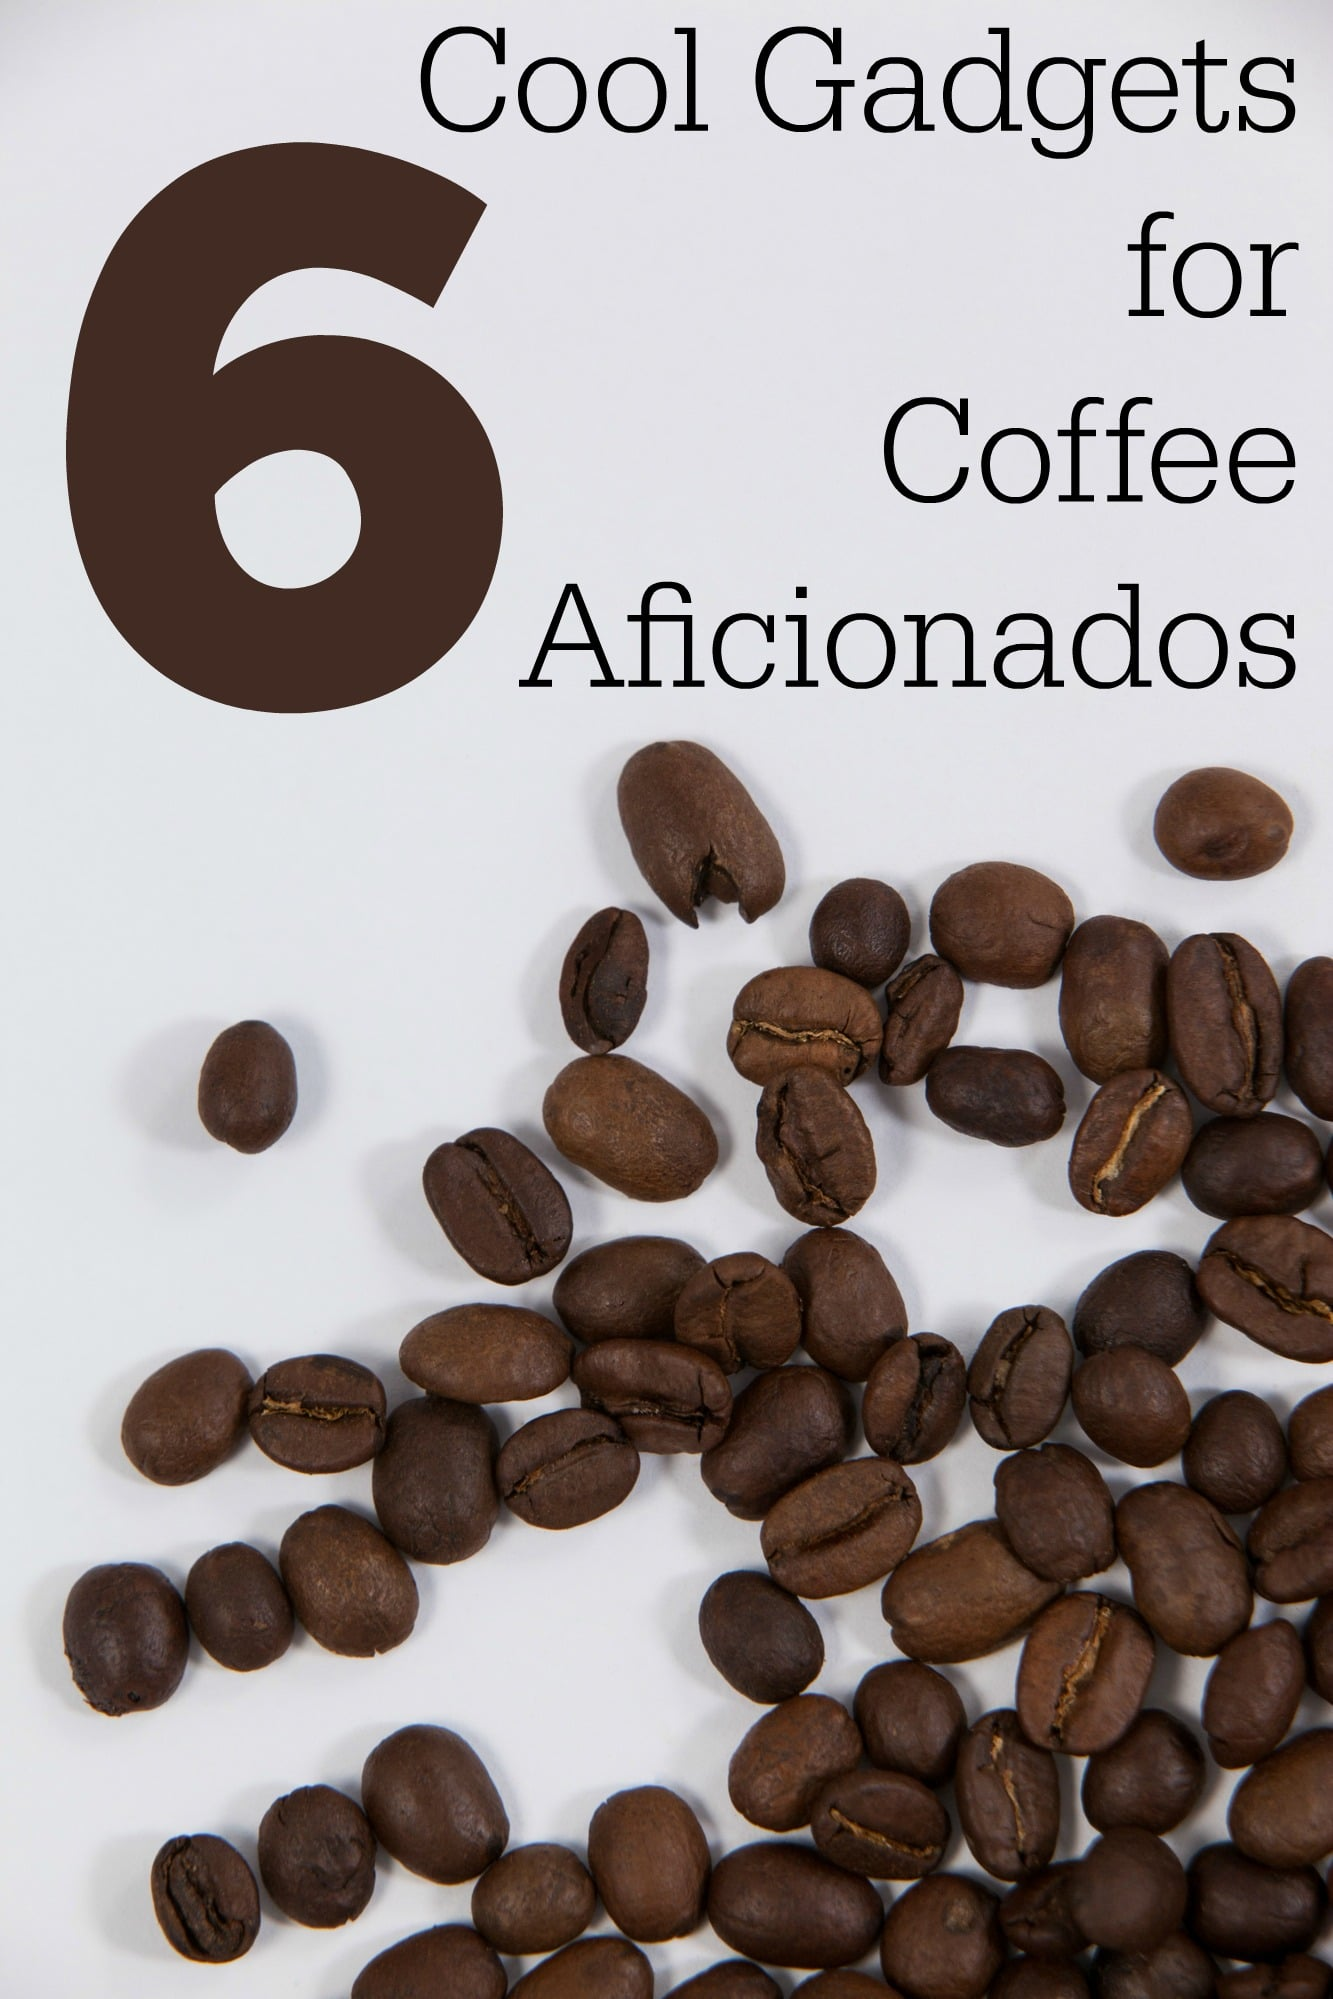 6 Cool Coffee Gifts Sets for Coffee Aficionados